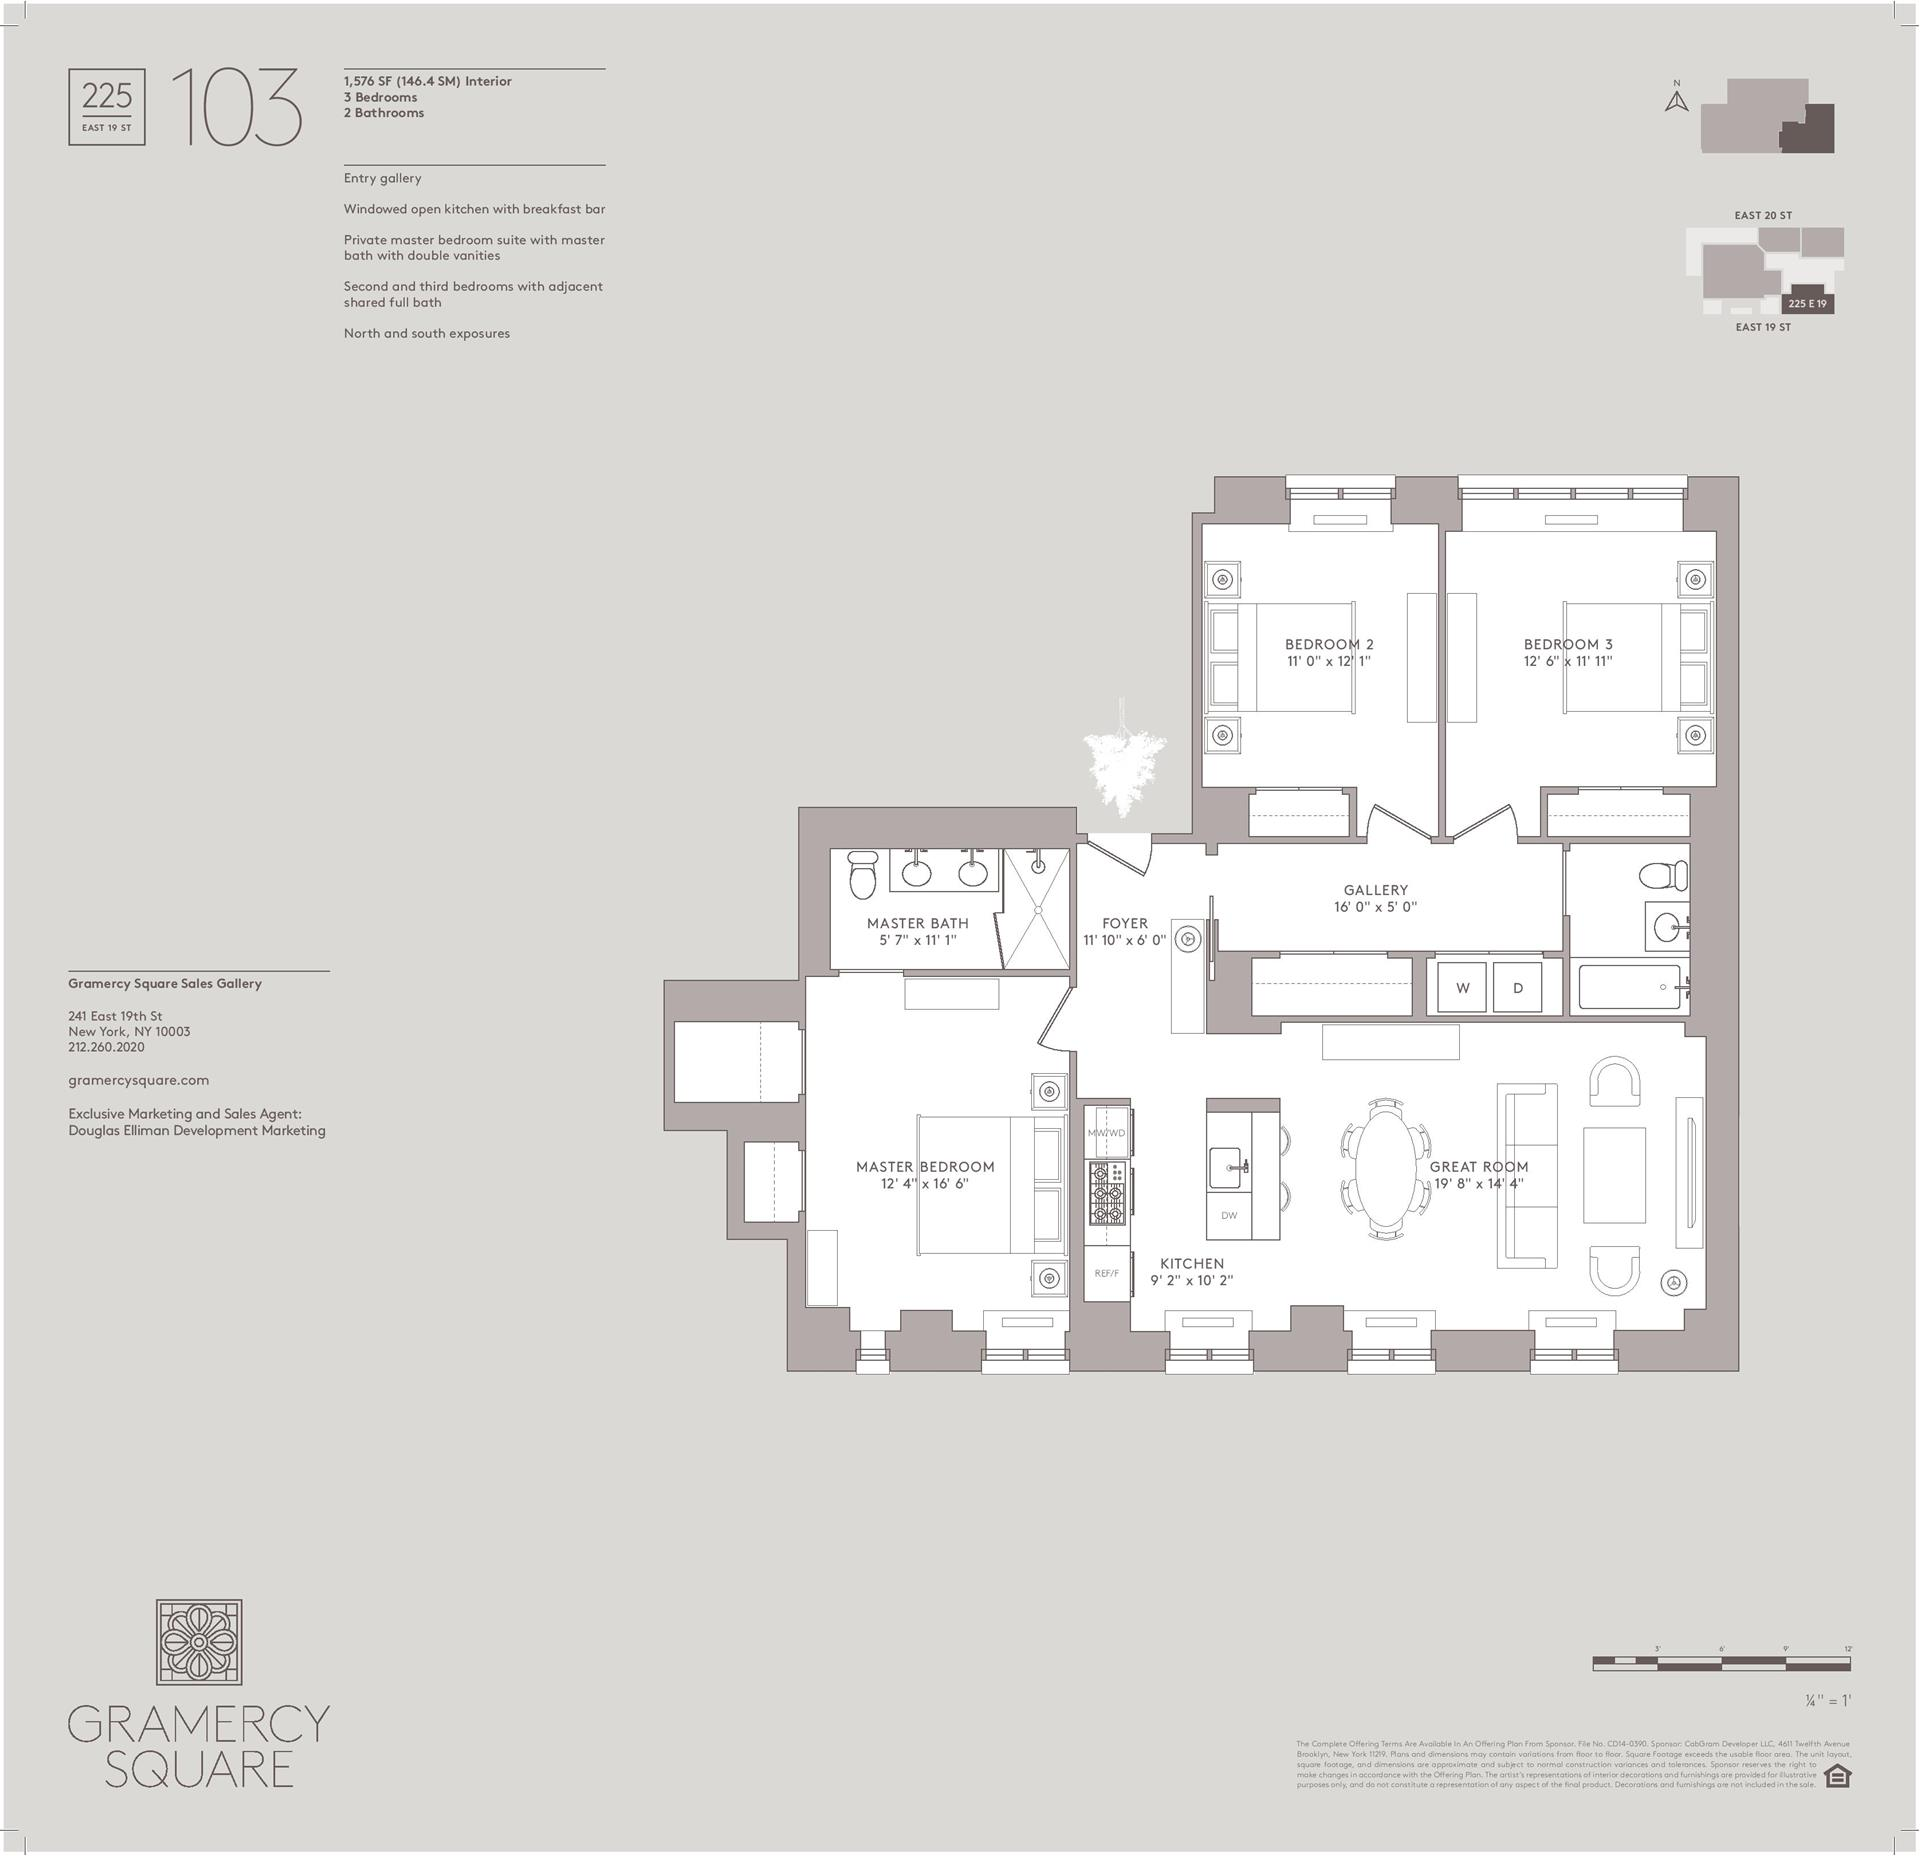 Floor plan of Gramercy Square, 225 East 19th St, 103 - Gramercy - Union Square, New York